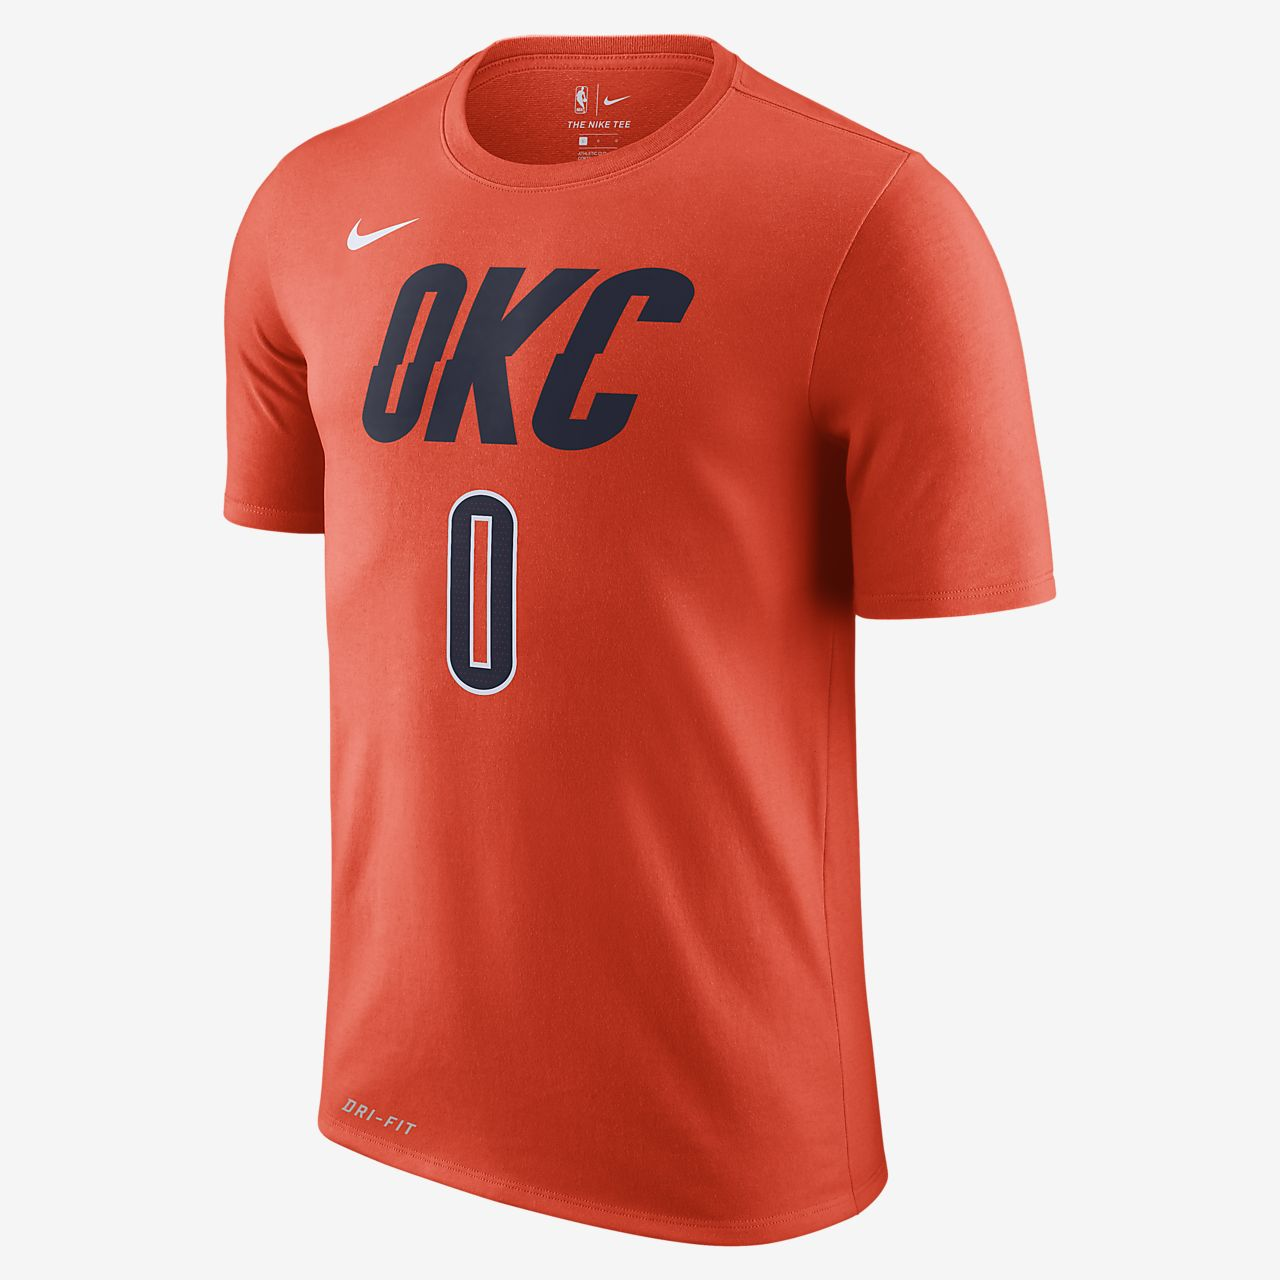 9c89d593849 Russell Westbrook Oklahoma City Thunder City Edition Nike Dri-FIT ...